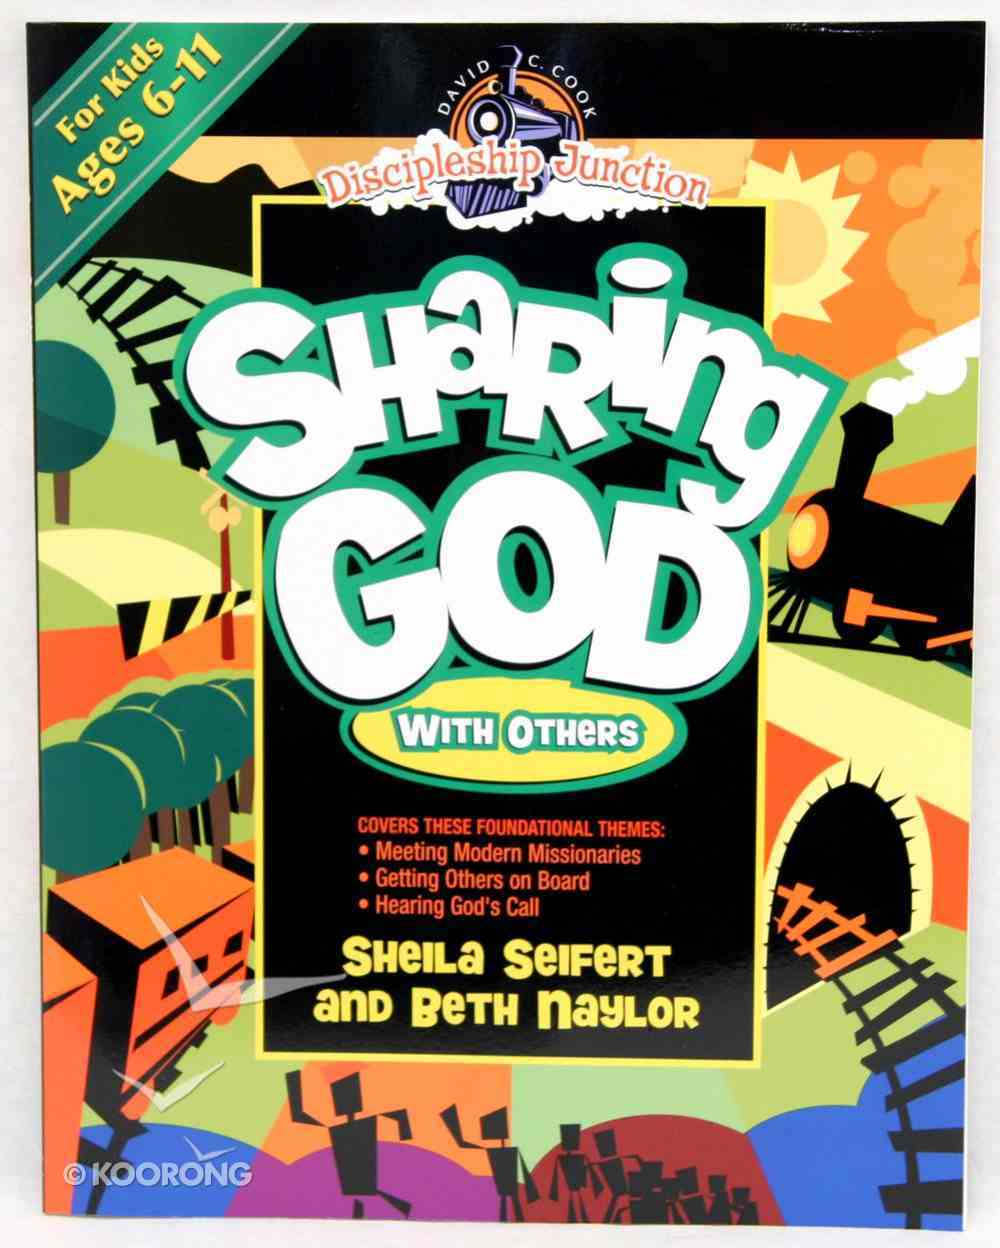 Sharing God With Others (Discipleship Junction Series) Paperback